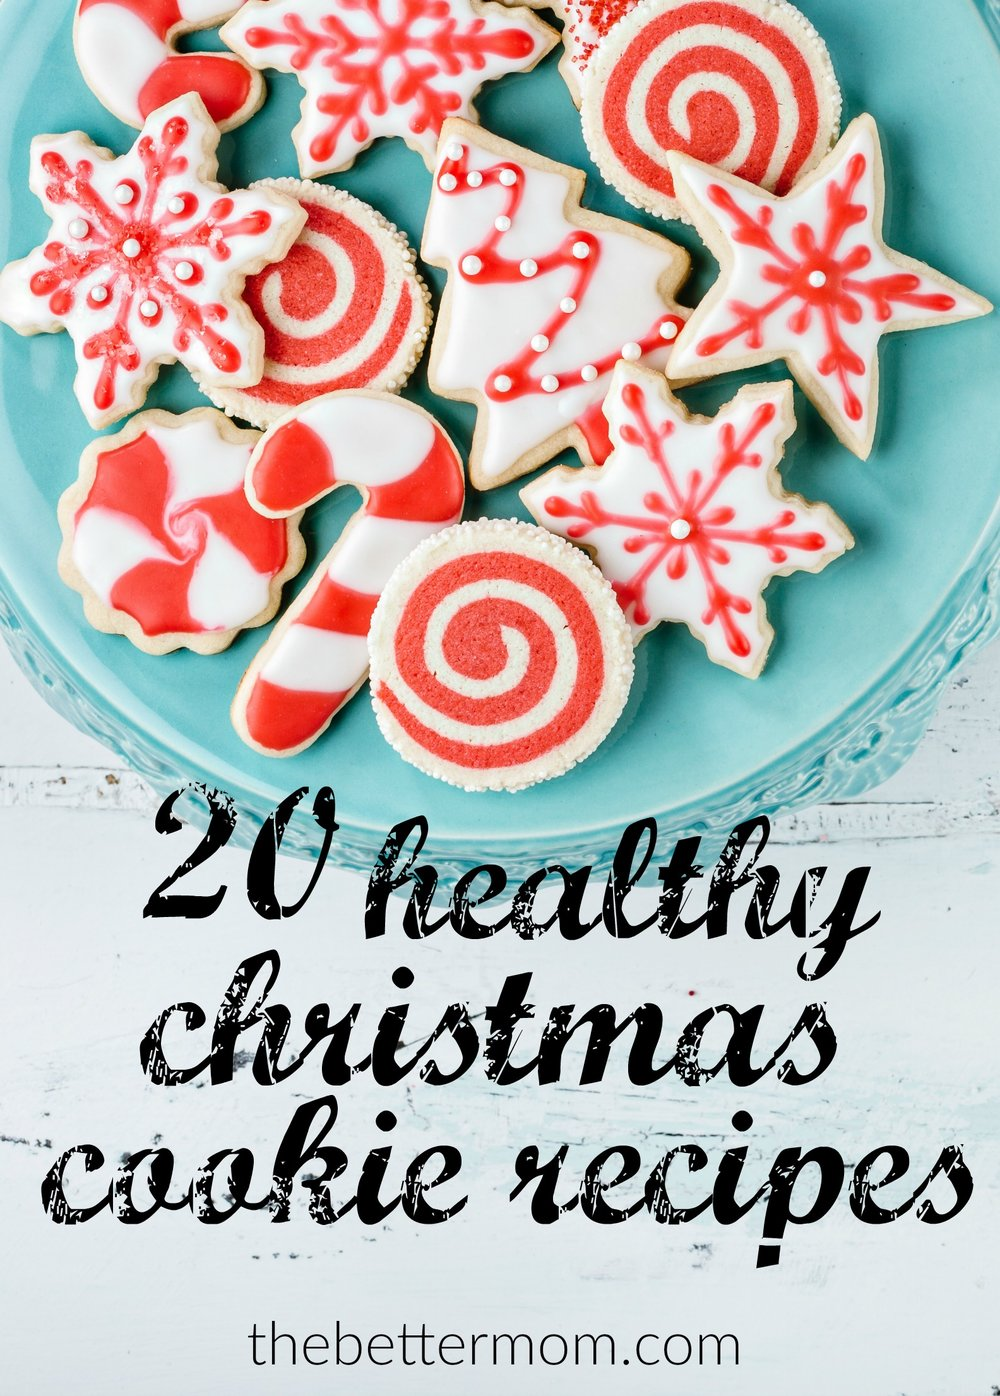 One of my favorite things about Christmas has always been baking Christmas cookies. Almond crescents, meltaways, and those peanut butter cookies with a chocolate kiss on top.  But finding a healthy option?! That takes a little more work! Healthy can still mean delicious! Here is my list of the healthiest cookies from around the internet! Hope you love them as much as I do!